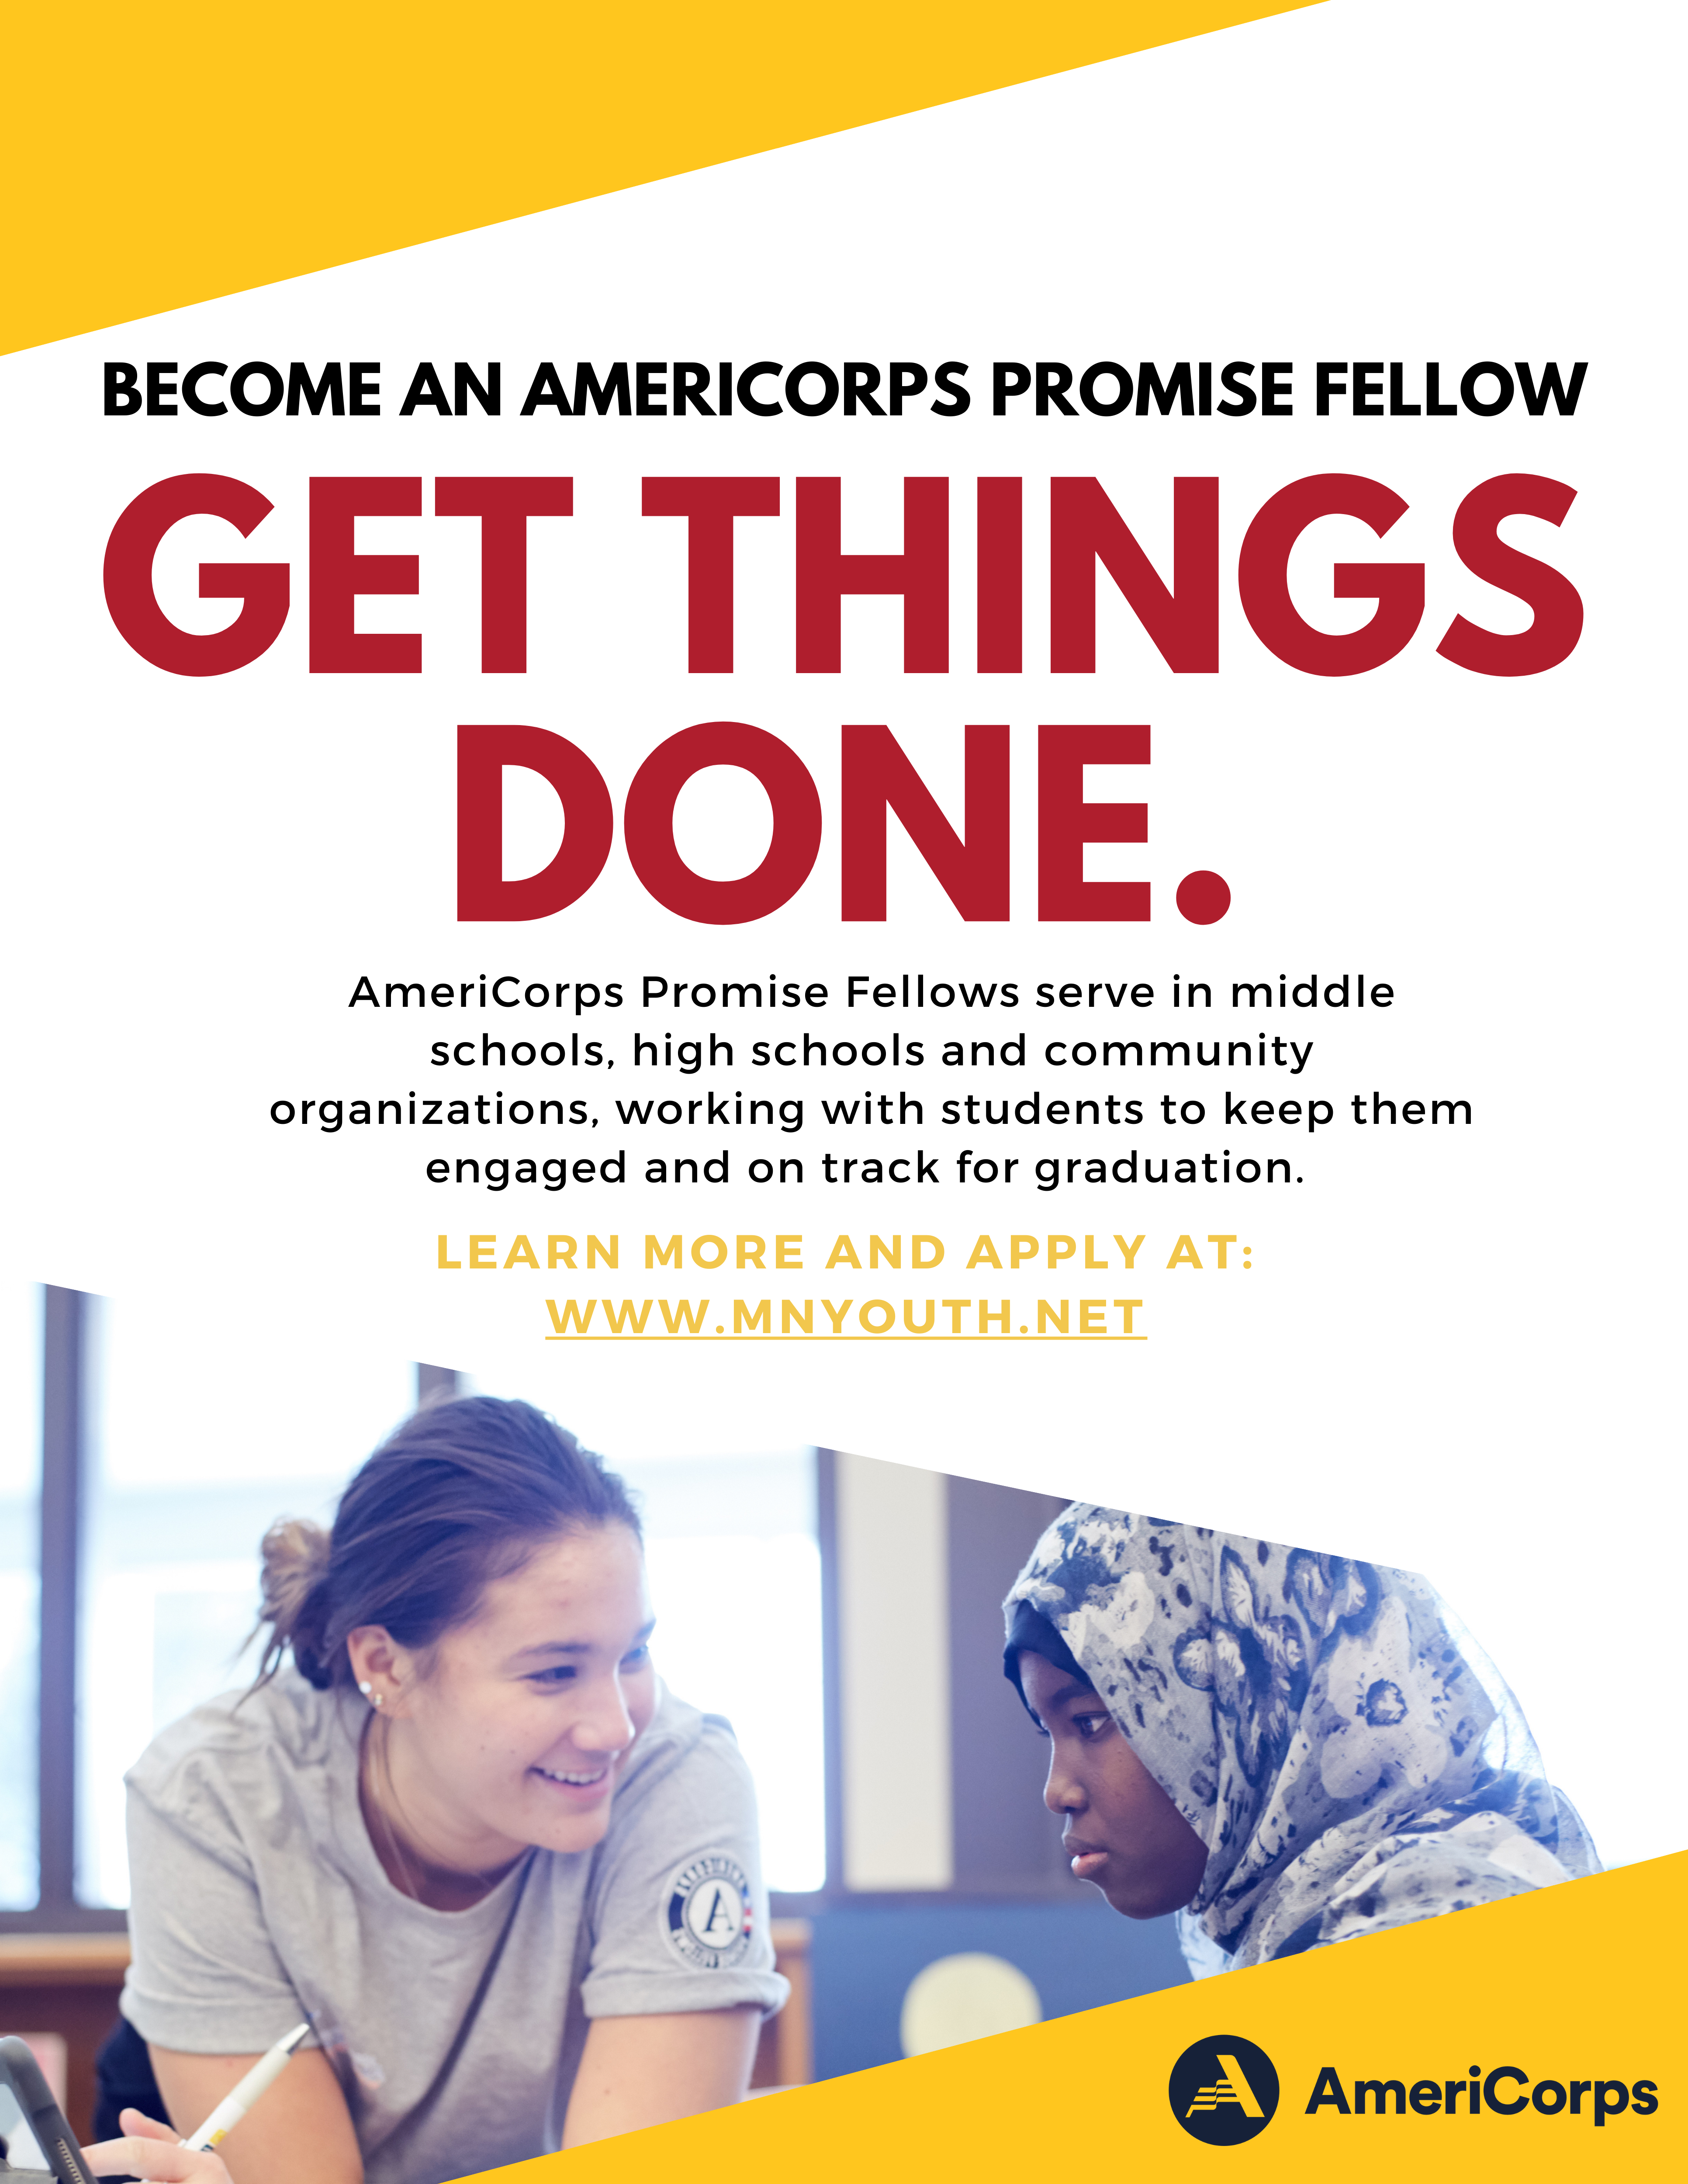 Promise Fellow and student tutoring poster